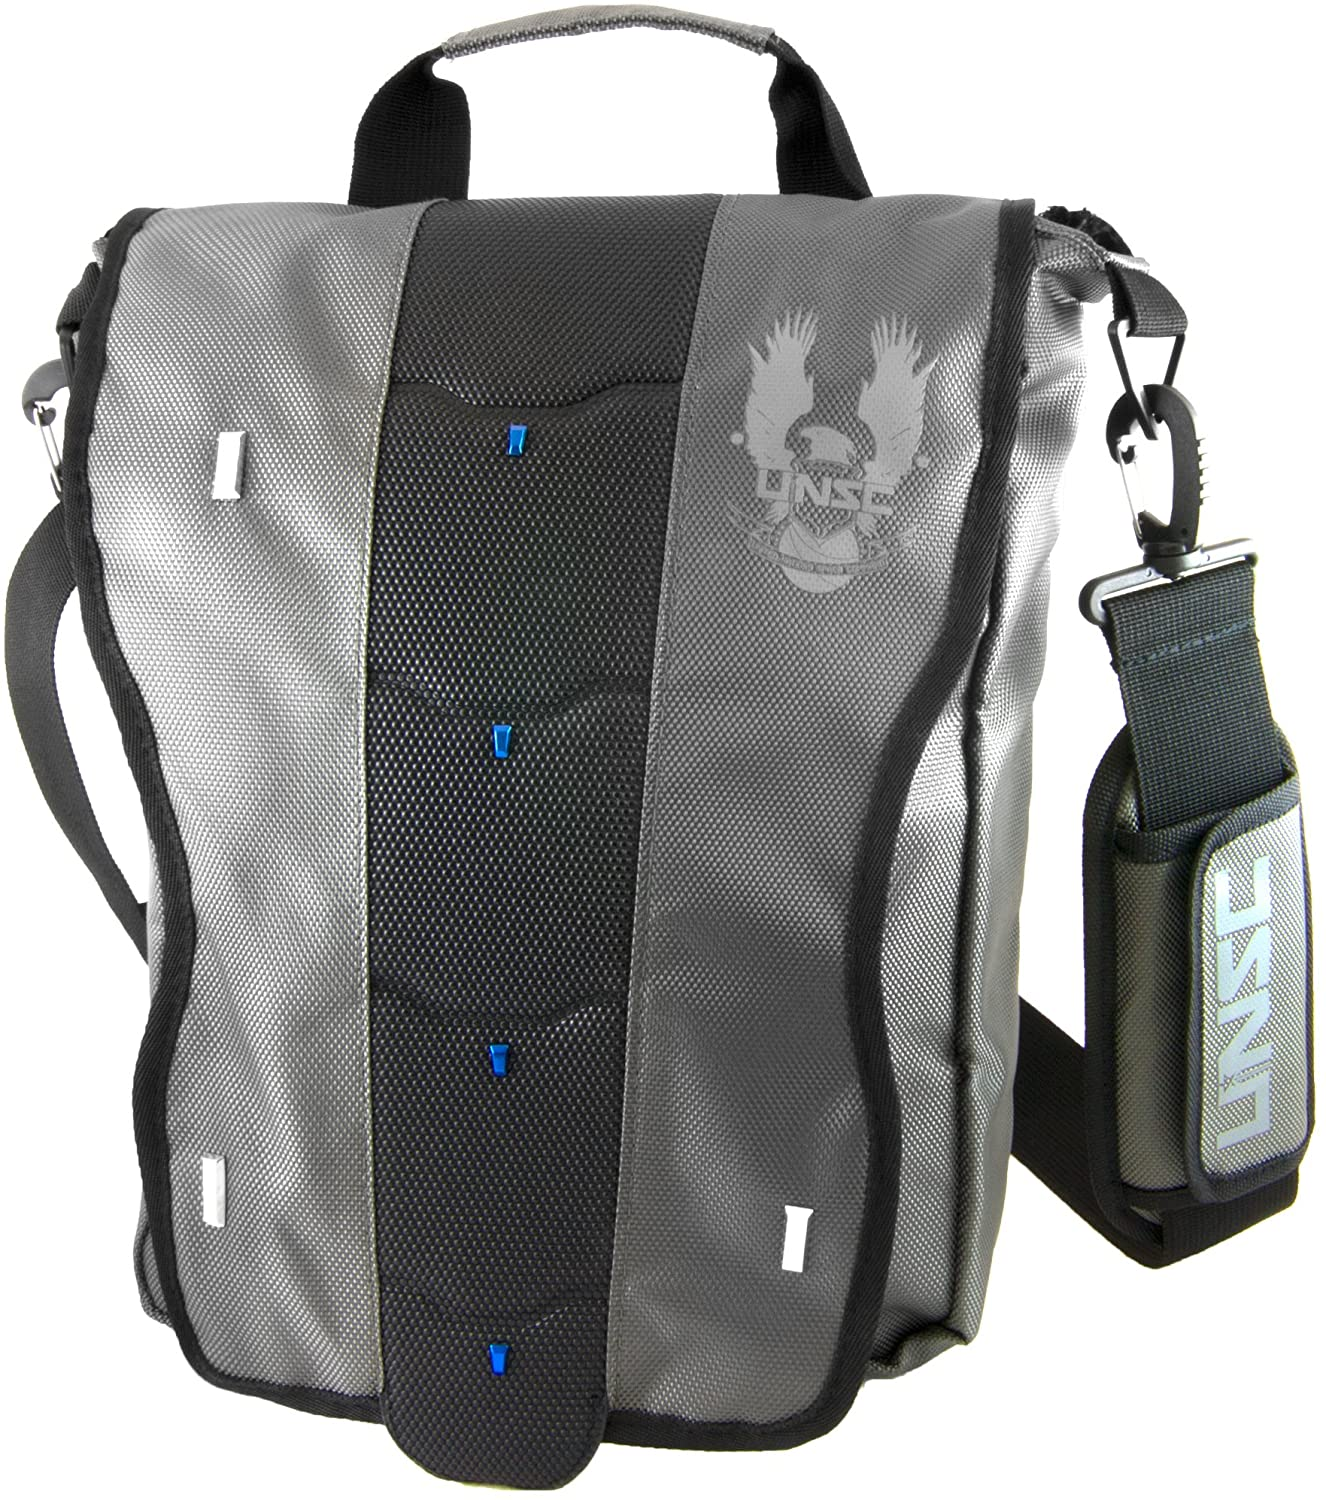 Halo 4 Max 87% OFF UNSC New products, world's highest quality popular! Fleet Officer Bag